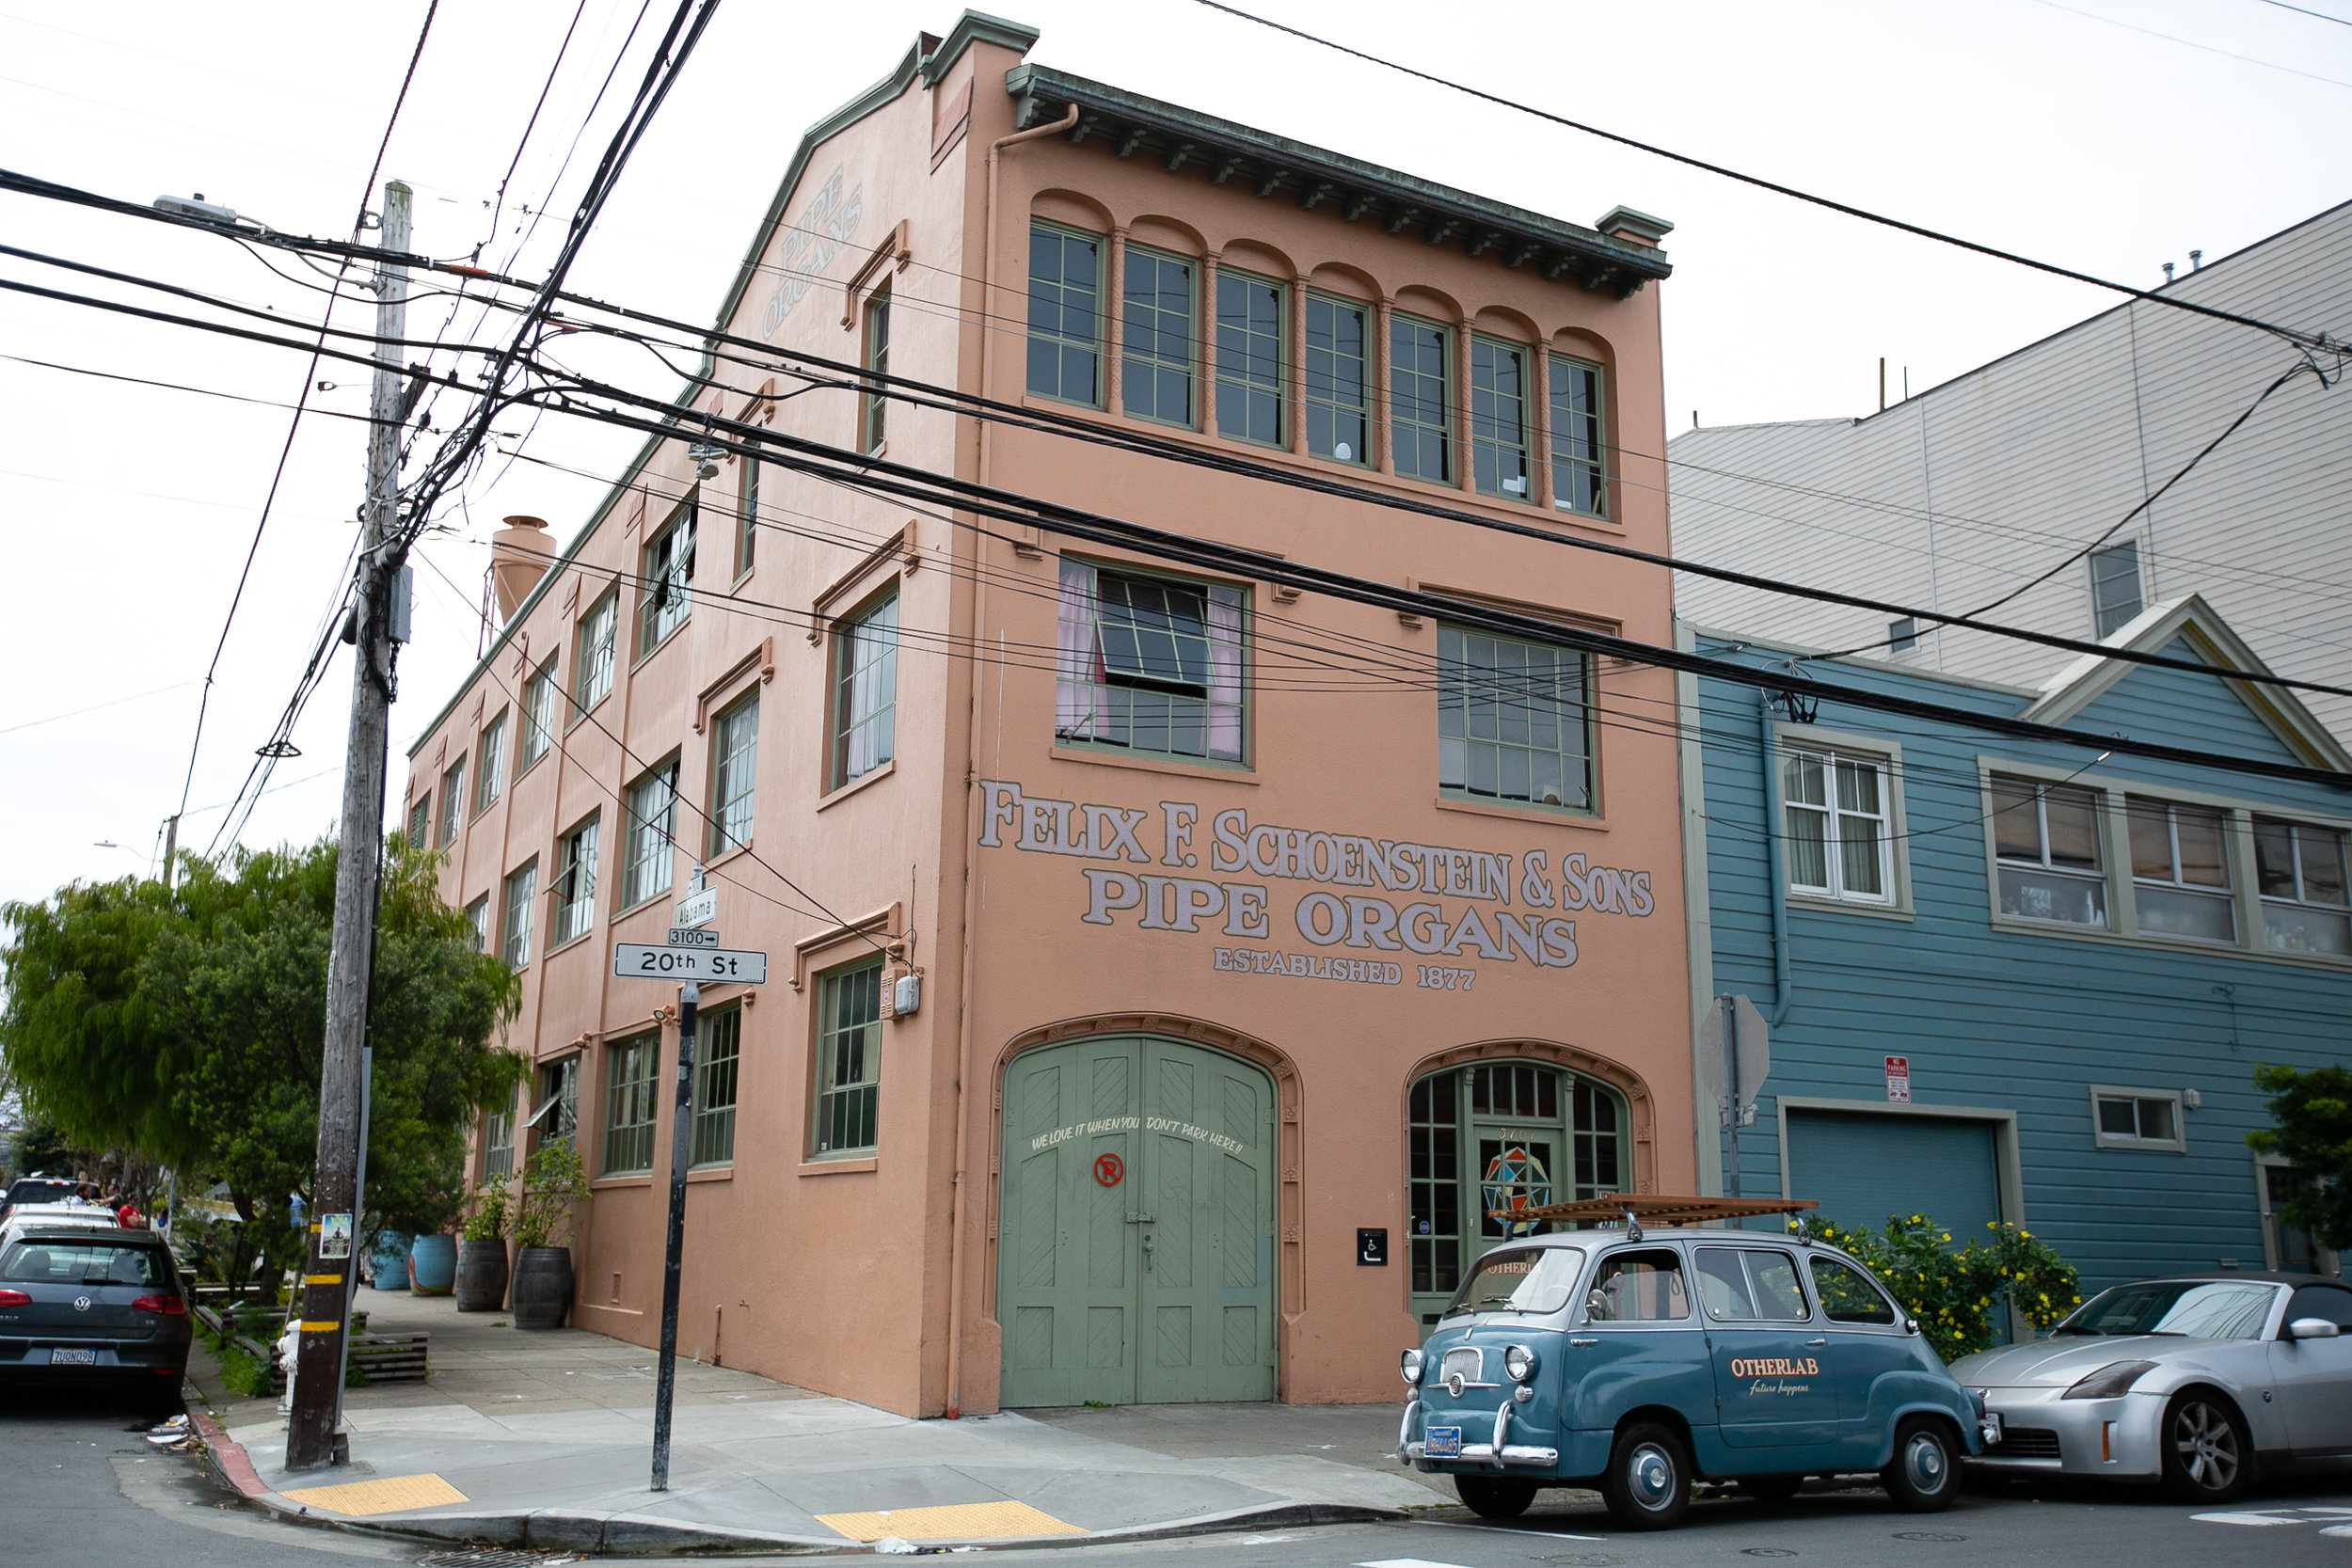 We live in the old   Schoenstein Organ Factory building     in the heart of San Francisco's Mission district.